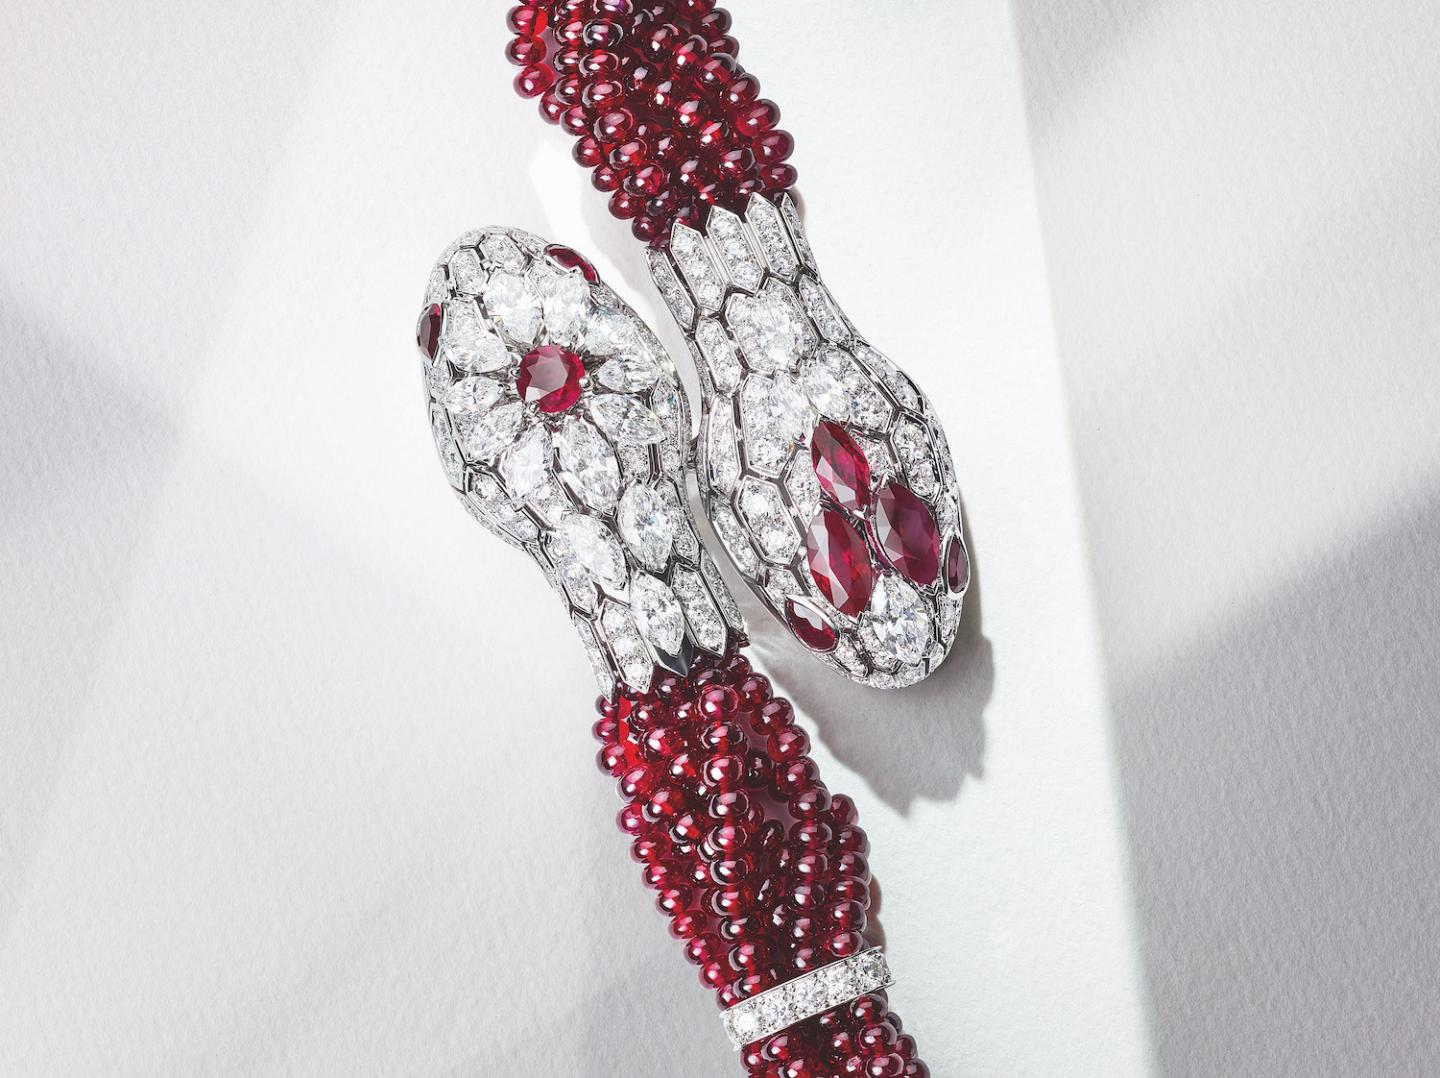 The Serpenti Misteriosi Intrecciati, directly inspired by Bulgari's archives, features a completely new design that combines Serpenti with beads.